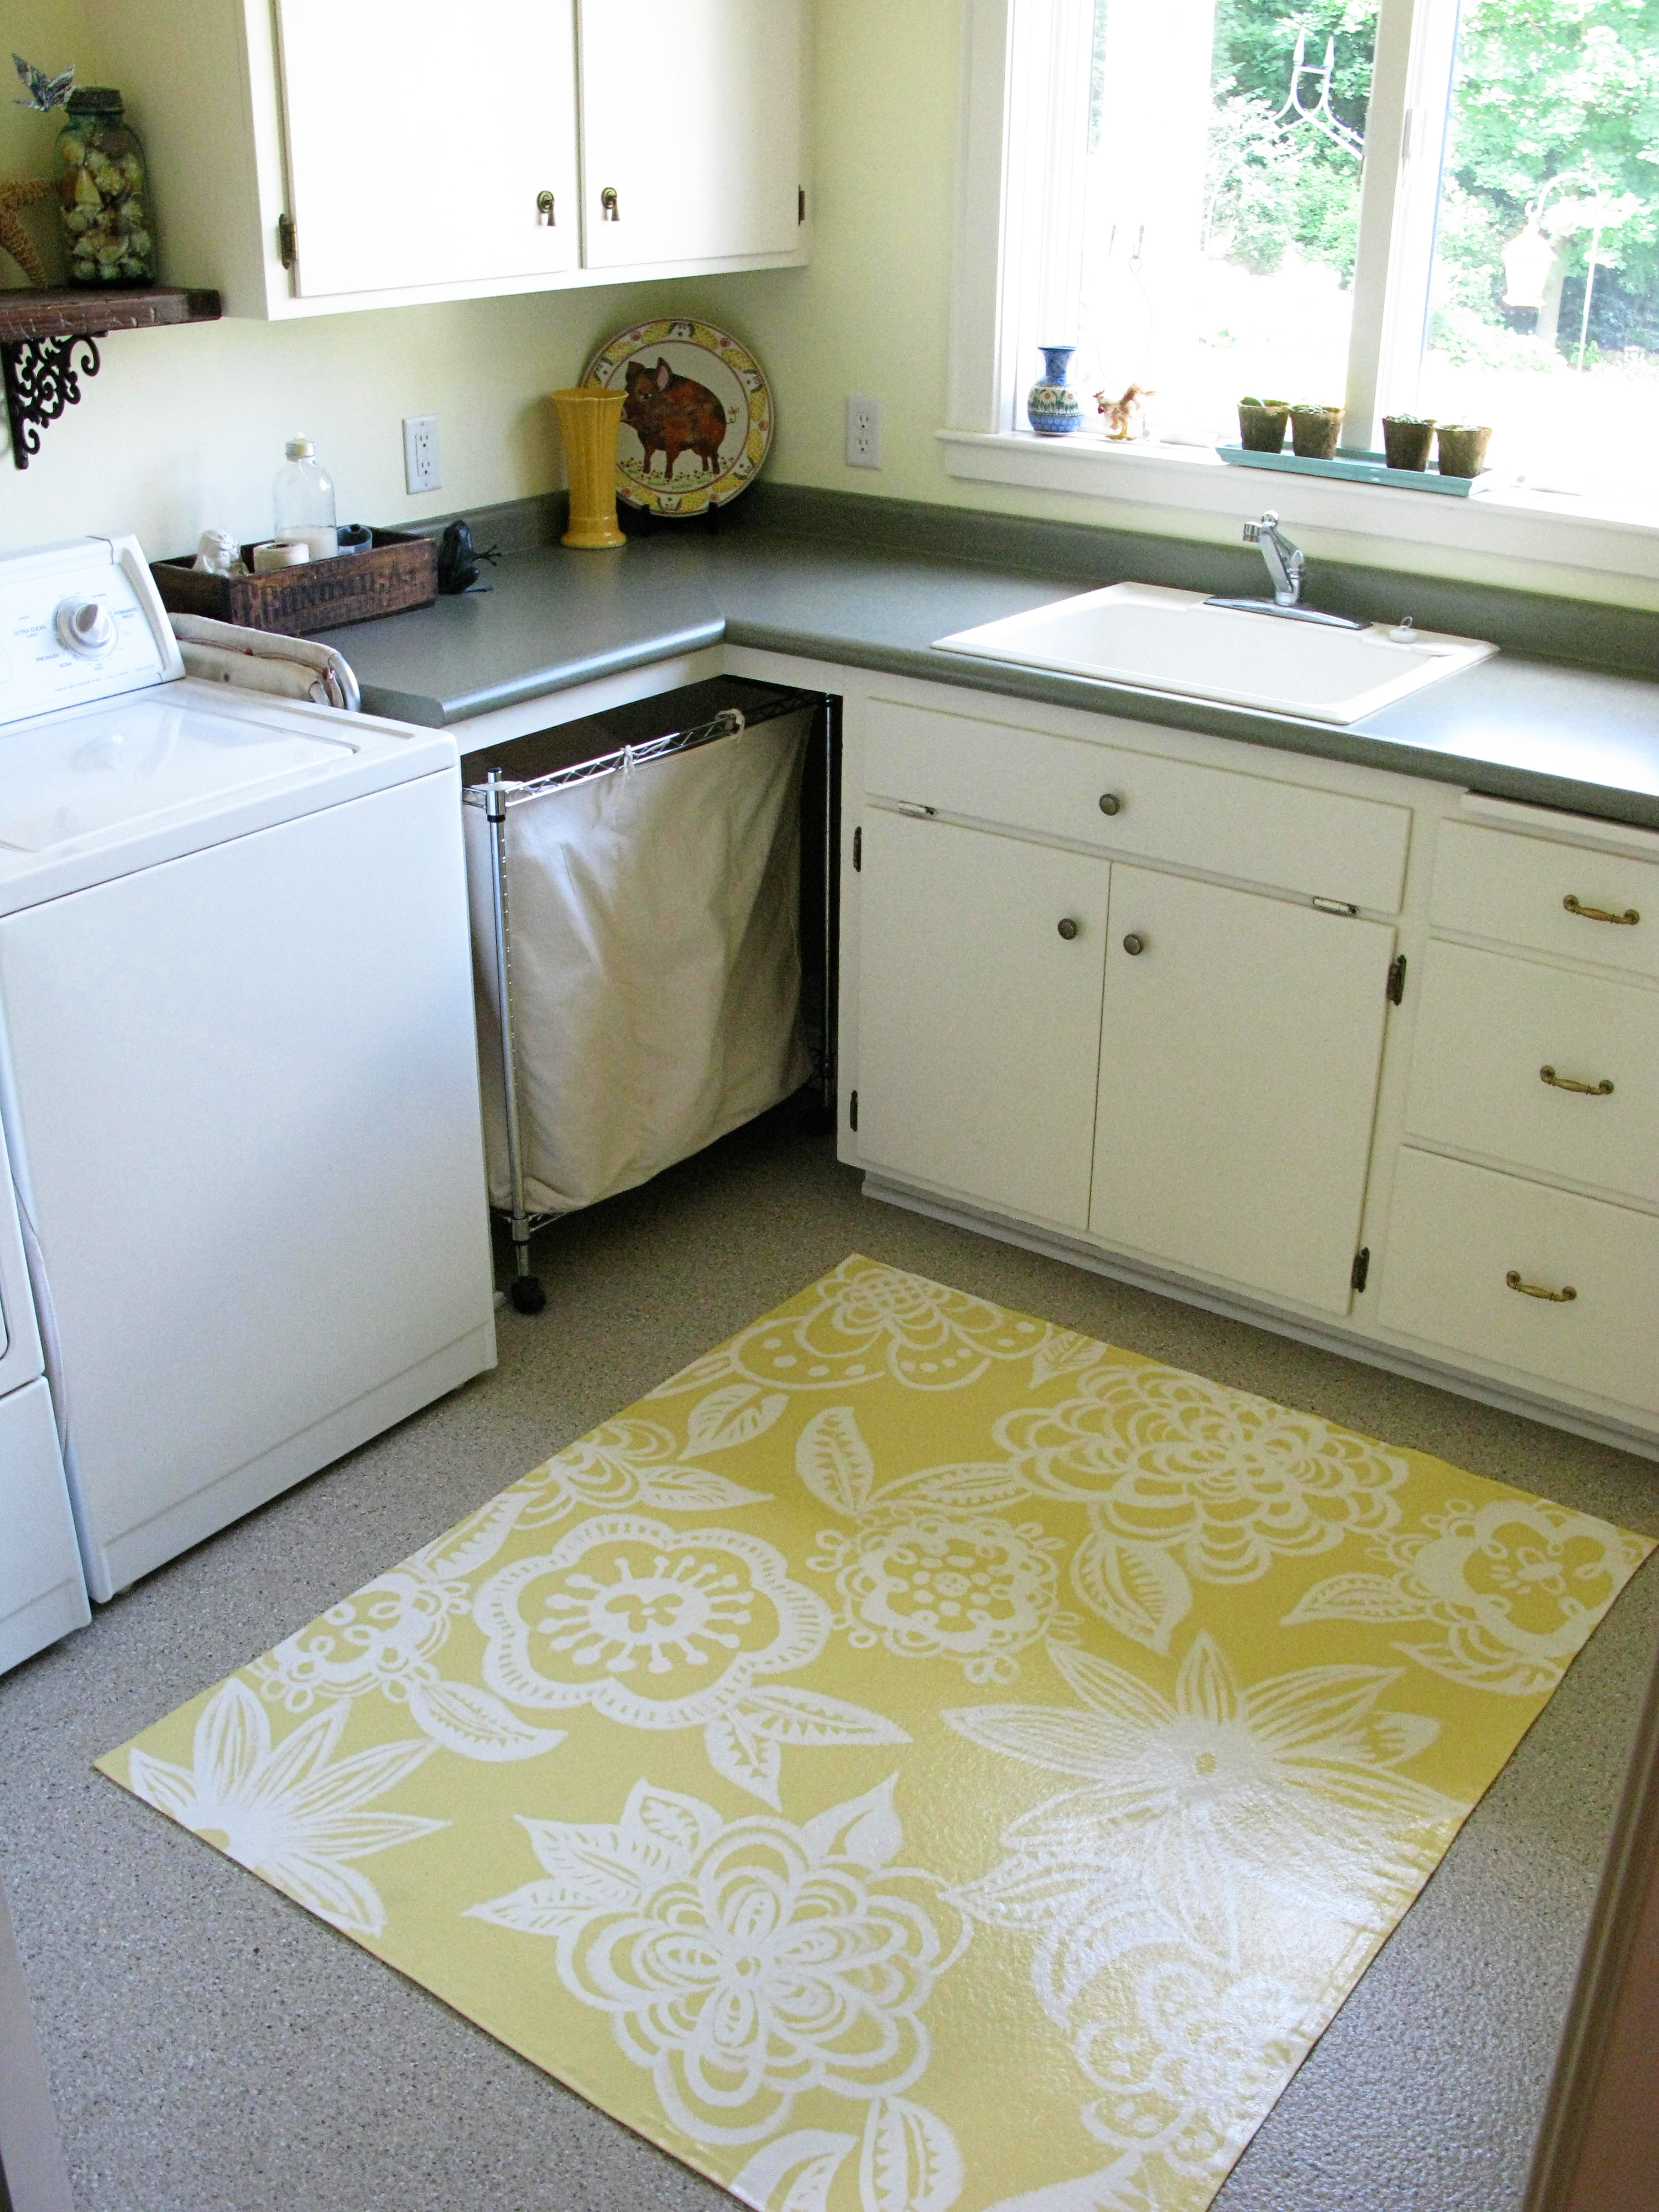 Painted Floor Cloth | Just About Home